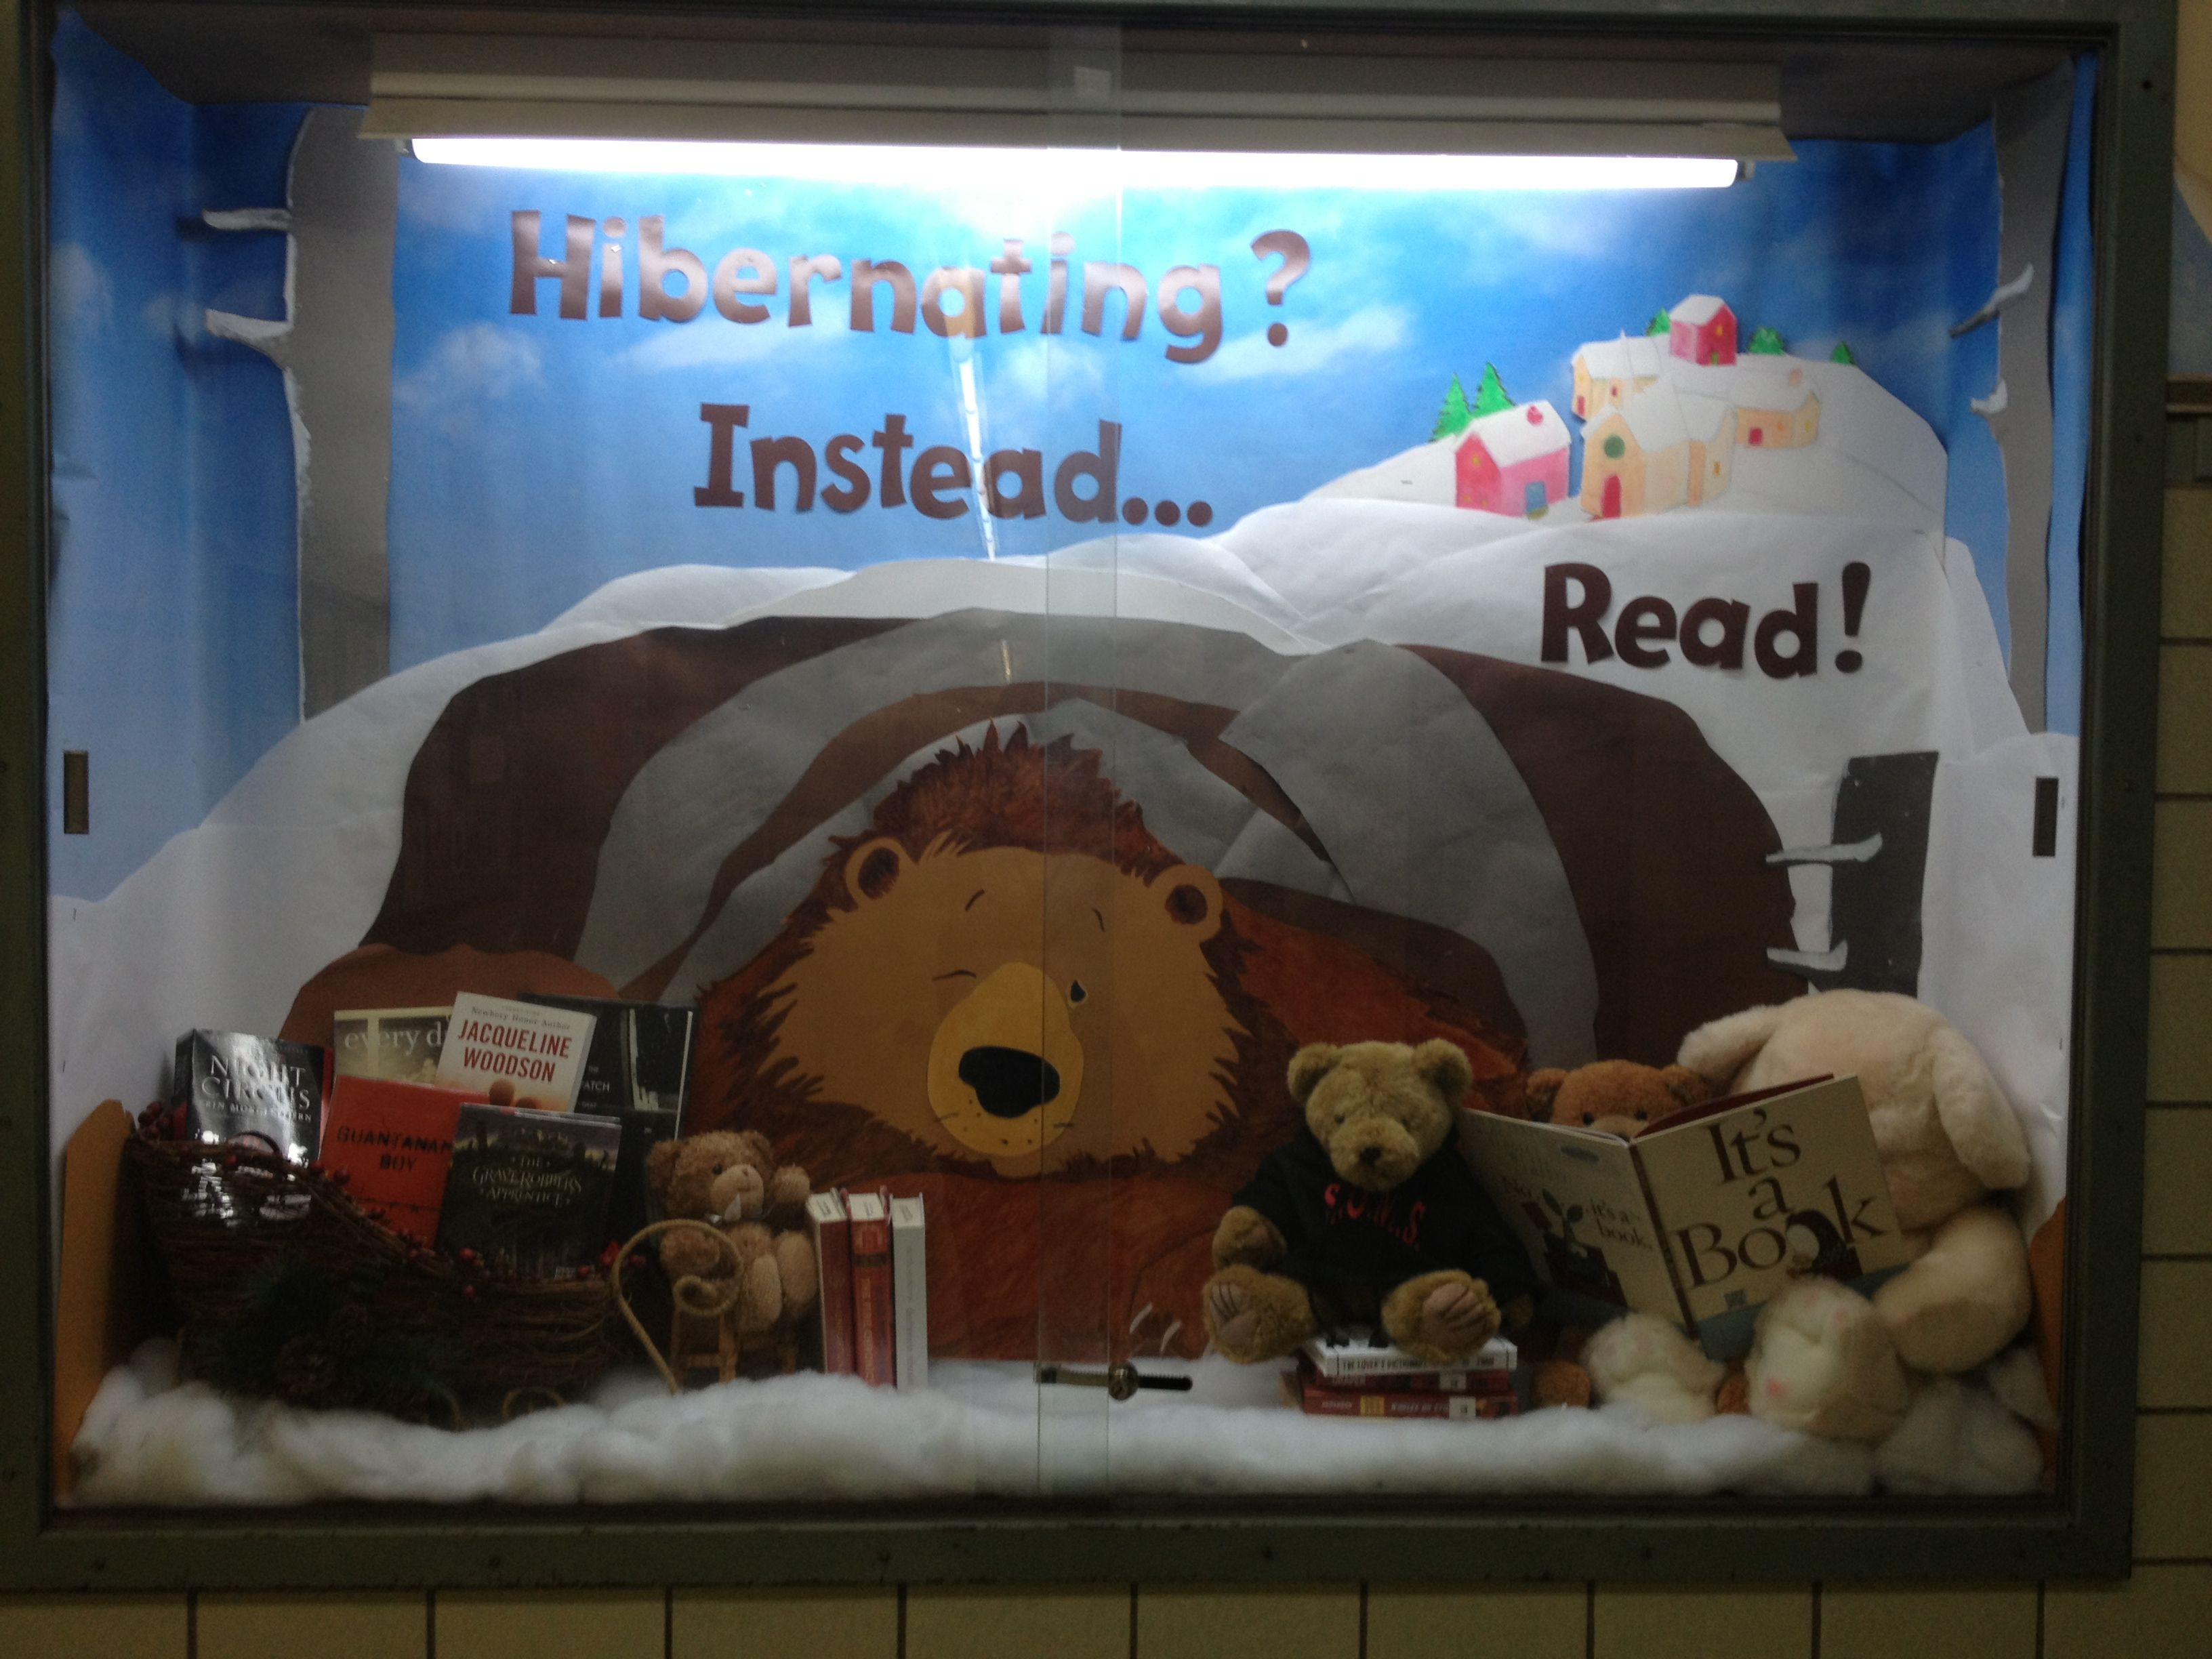 Schaufensterdeko Winter My Amazing Library Aide Ms. Mitchell Made This Display For